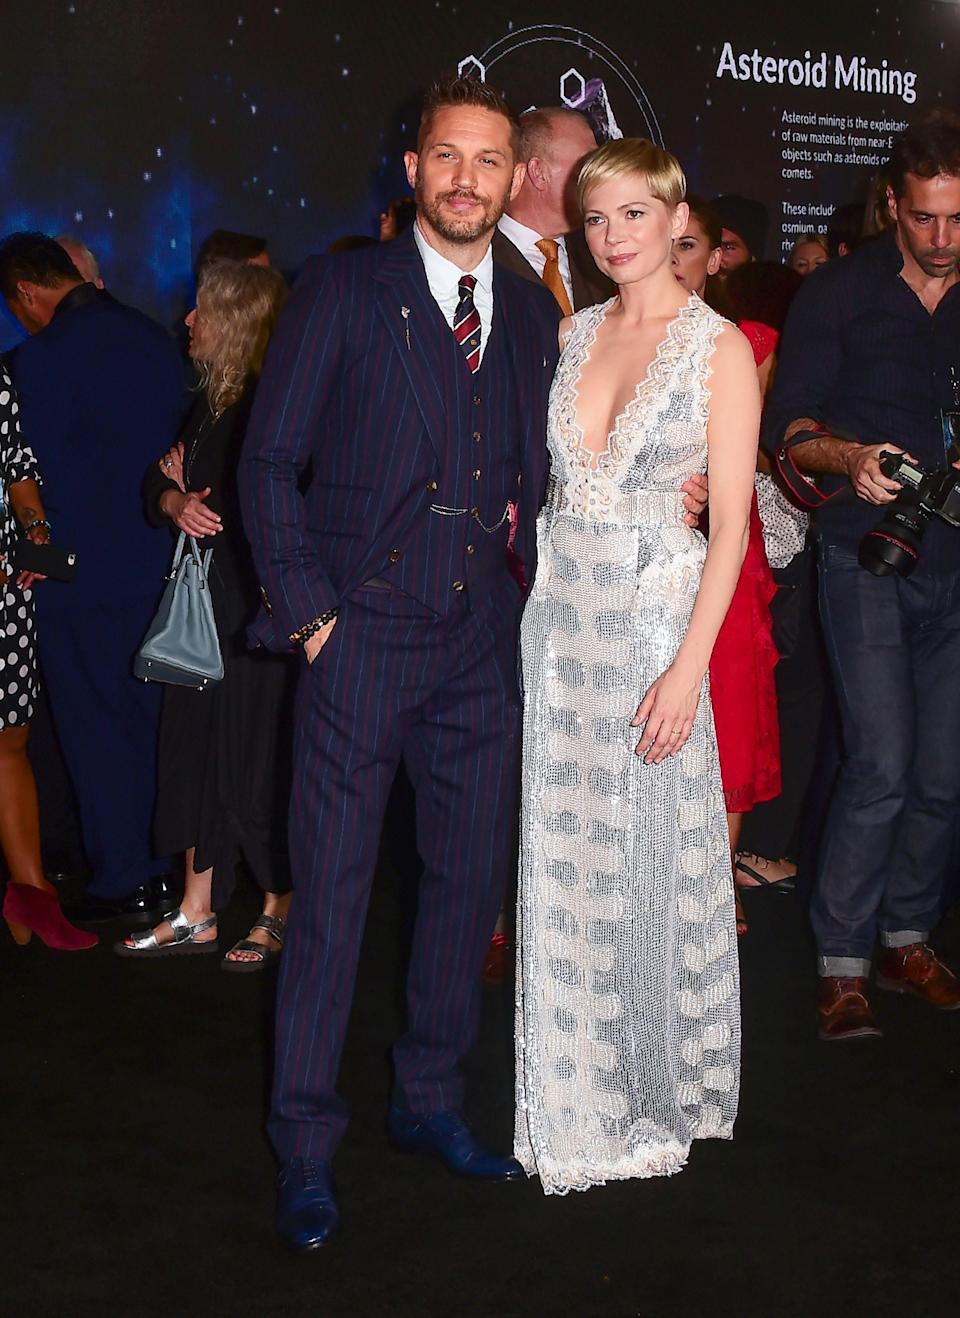 <p>Michelle Wiliams and Tom Hardy proved they scrub up well for the premiere of new film 'Venom'. Williams shimmered in a Louis Vuitton dress while Hardy dressed in a pinstripe suit. <em>[Photo: Getty]</em> </p>